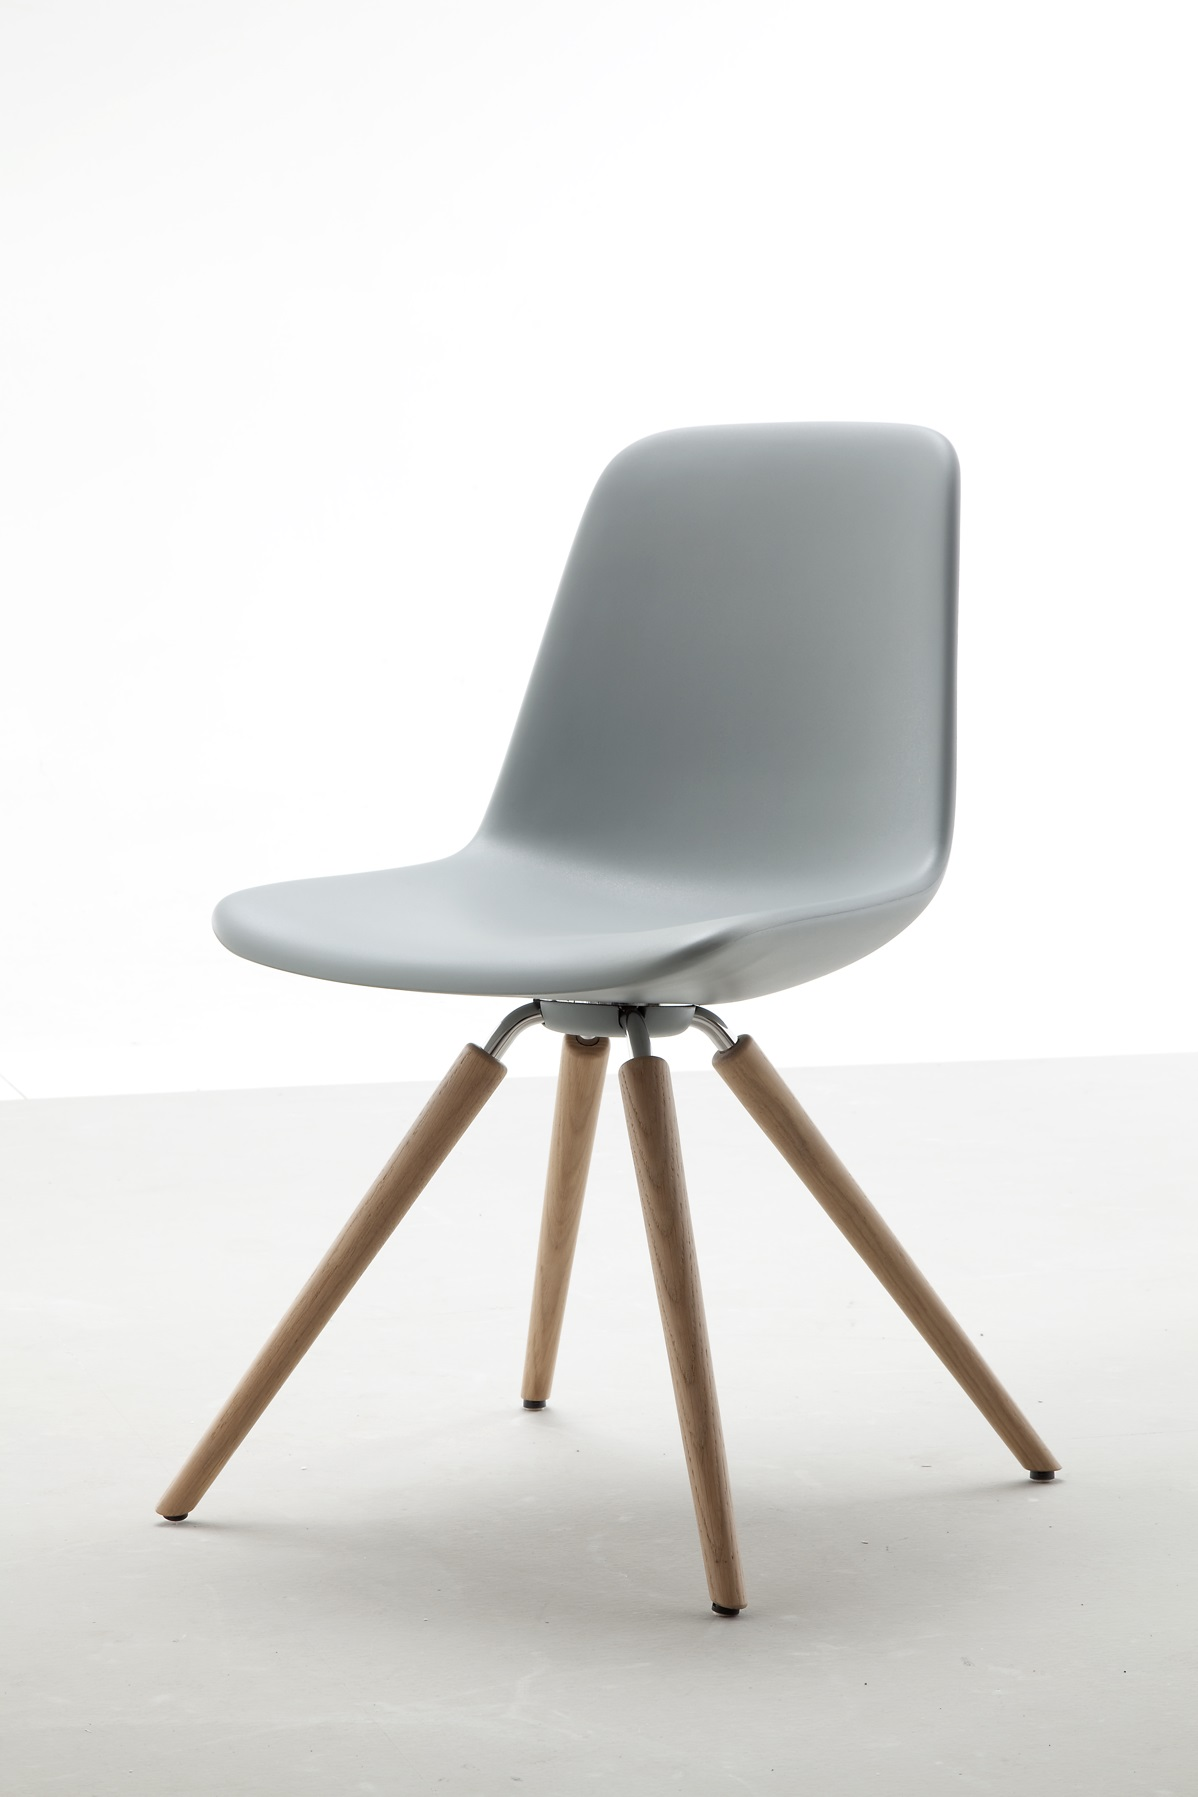 Step dining chair